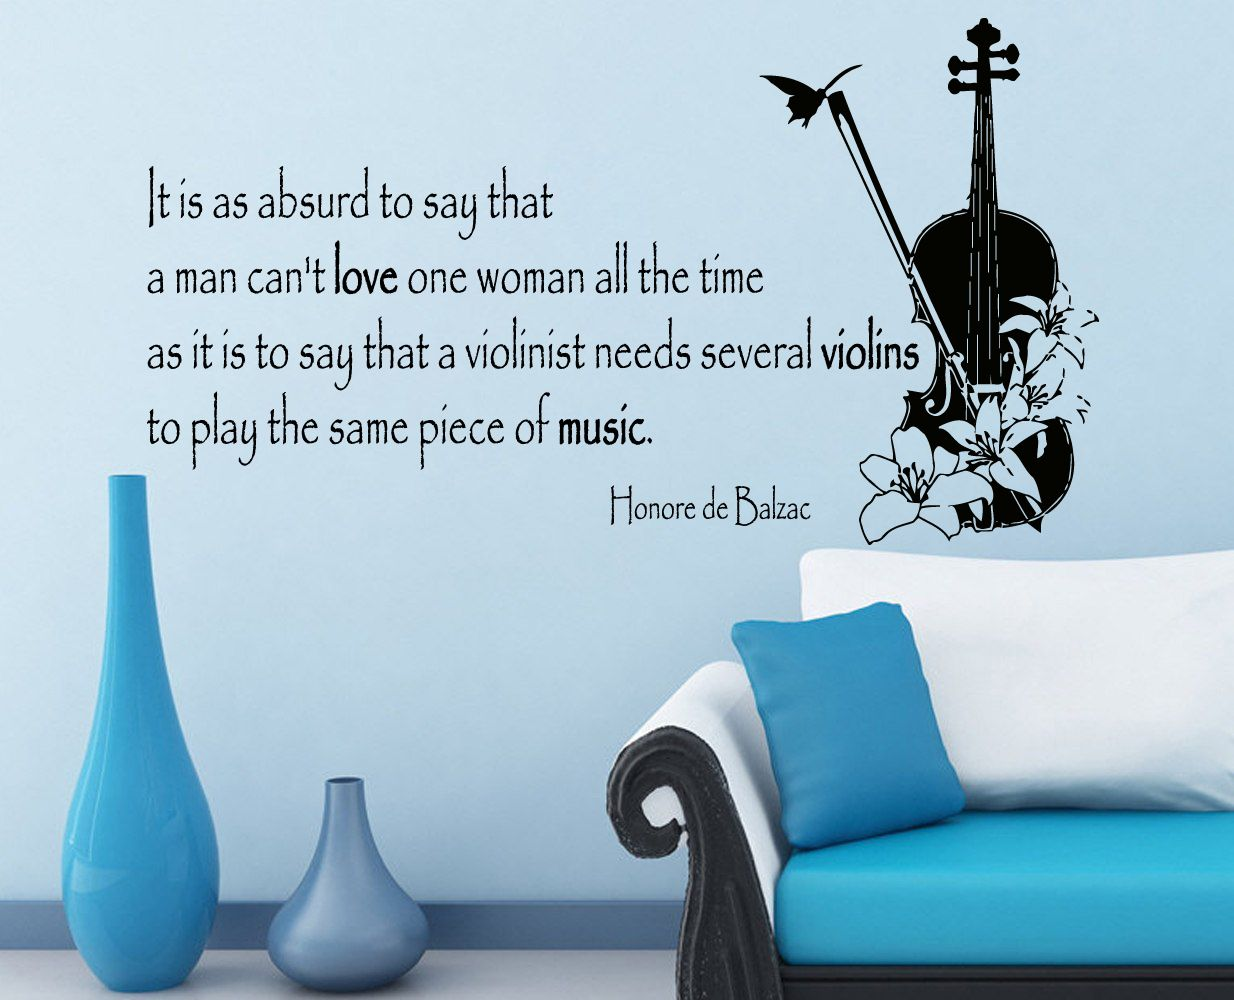 honore de balzac quote about music to love a woman music in our items similar to violin wall decals honore de balzac quote music to love a woman violinist floral design vinyl decal sticker home art interior decor on etsy